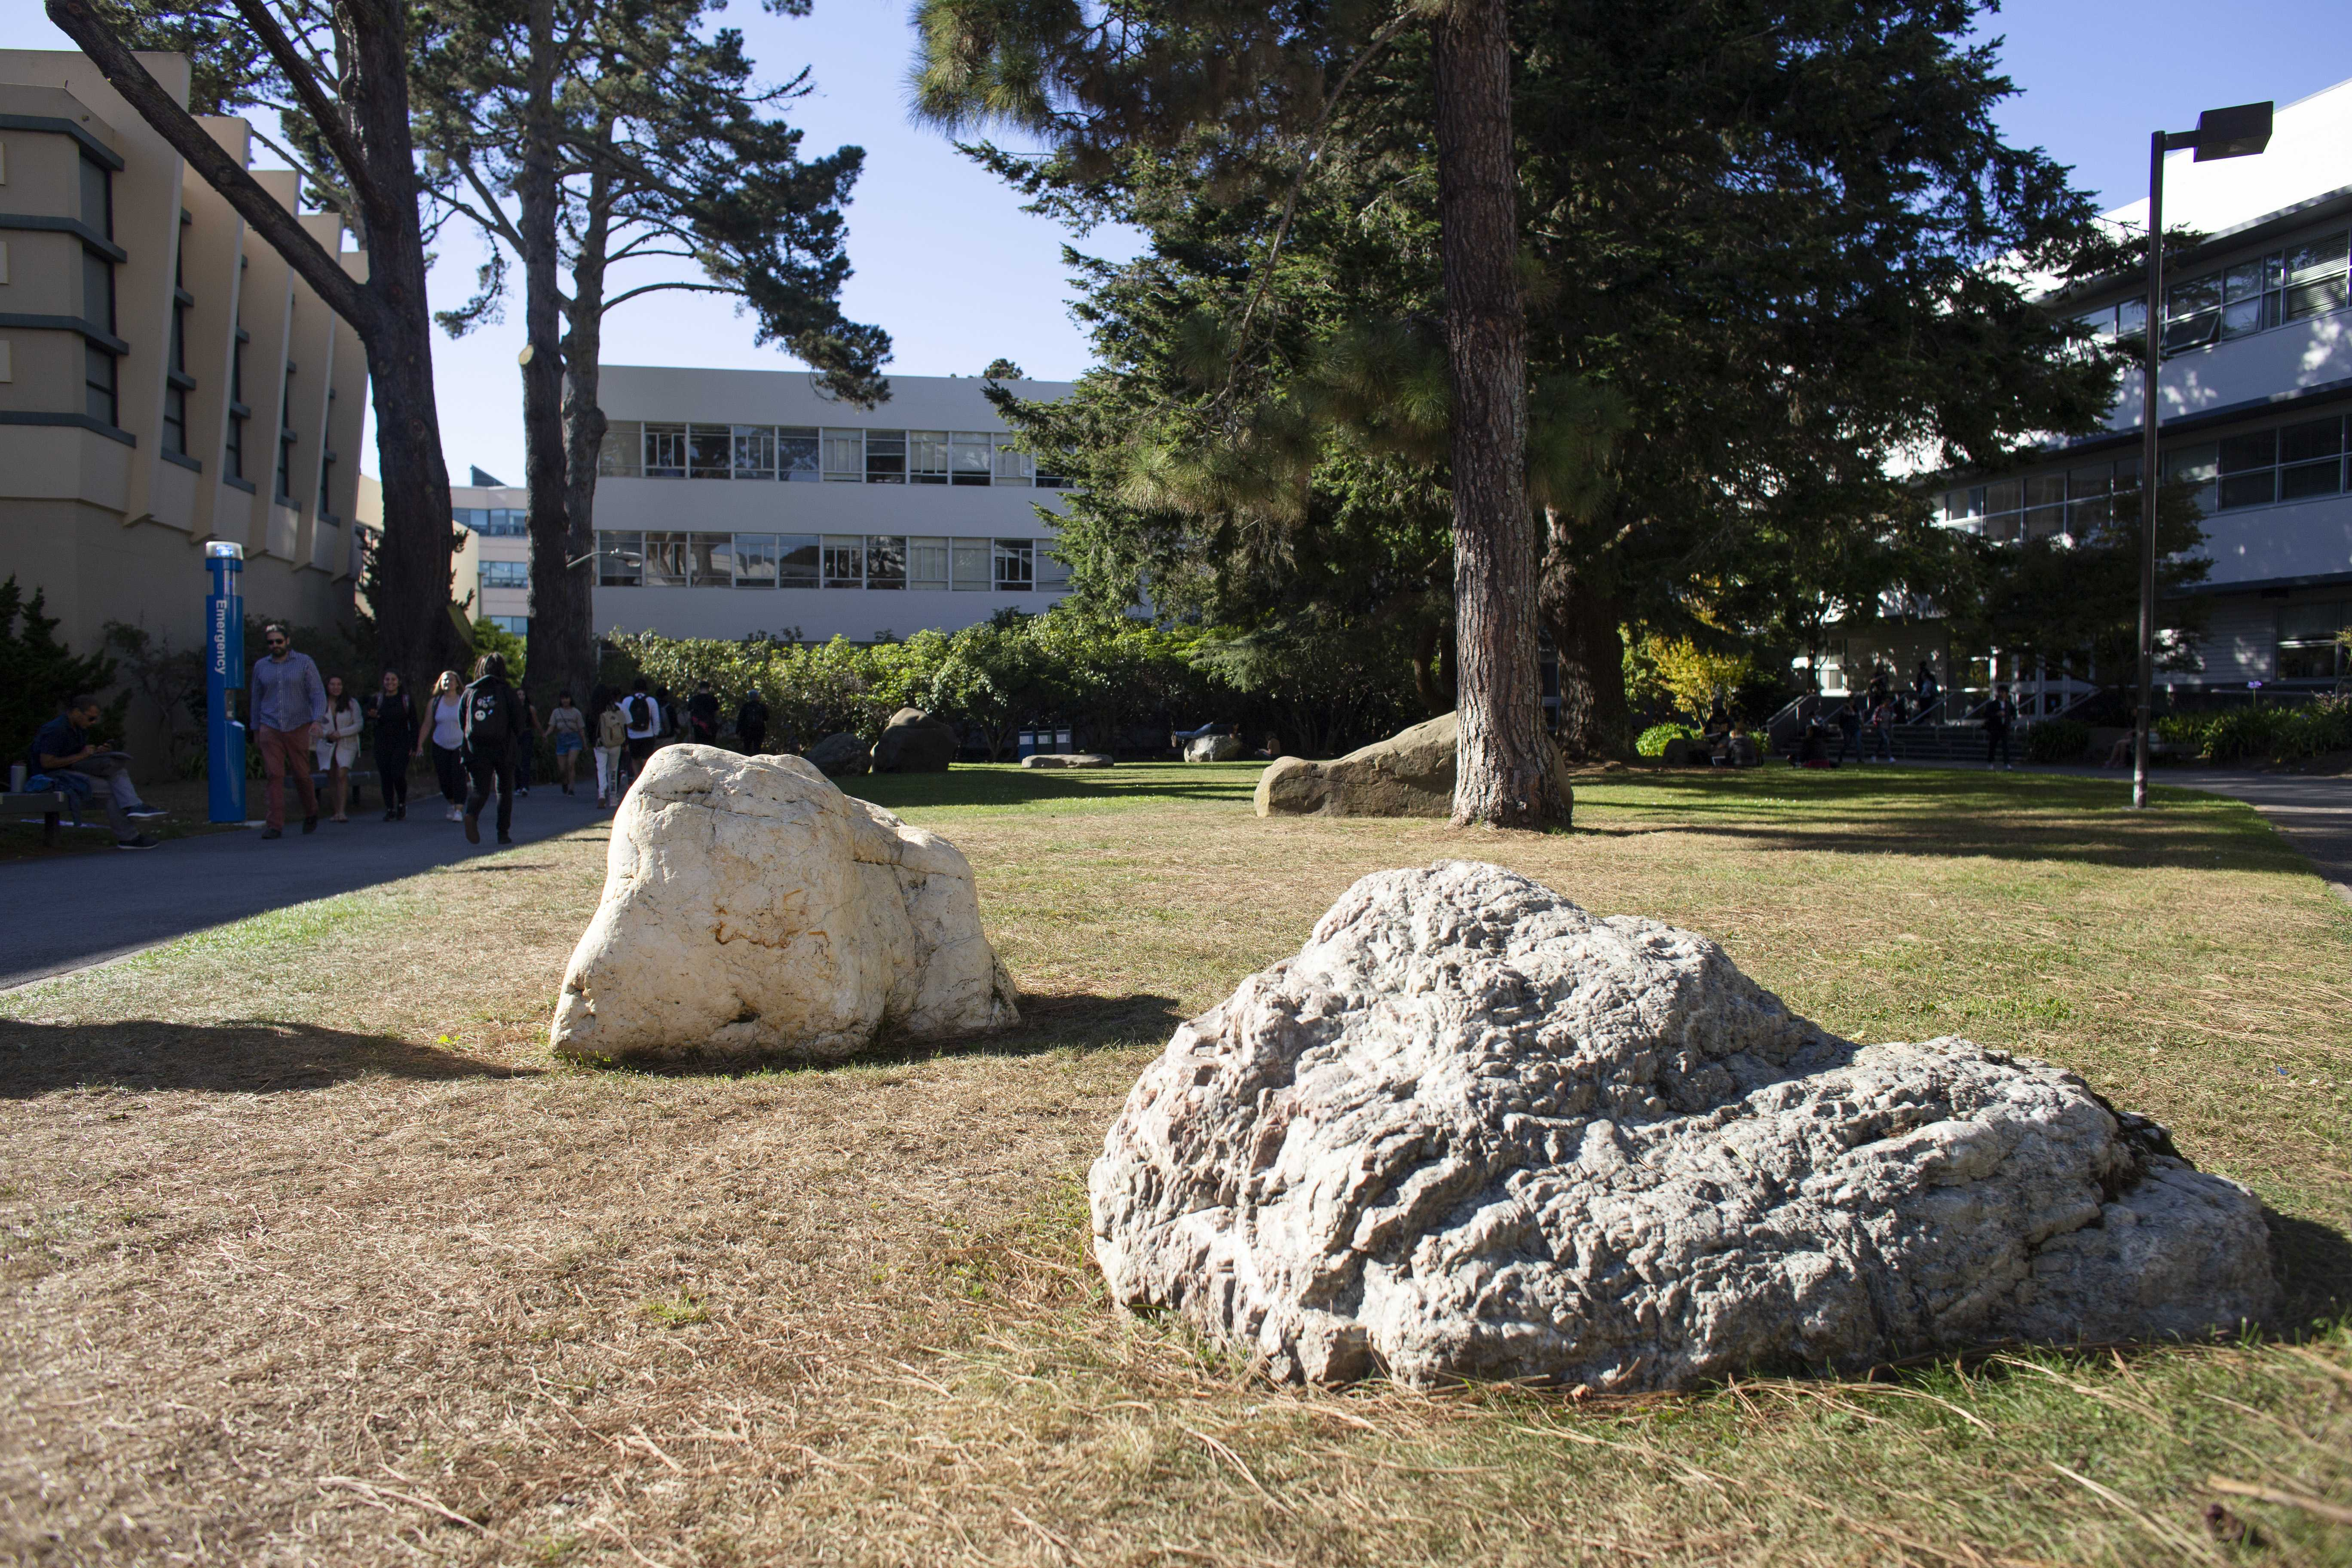 The Garden of Remembrance features 11 stones that represent Japanese Internment camps that were used nationwide during WWII. (Christian Urrutia/Golden Gate Xpress)